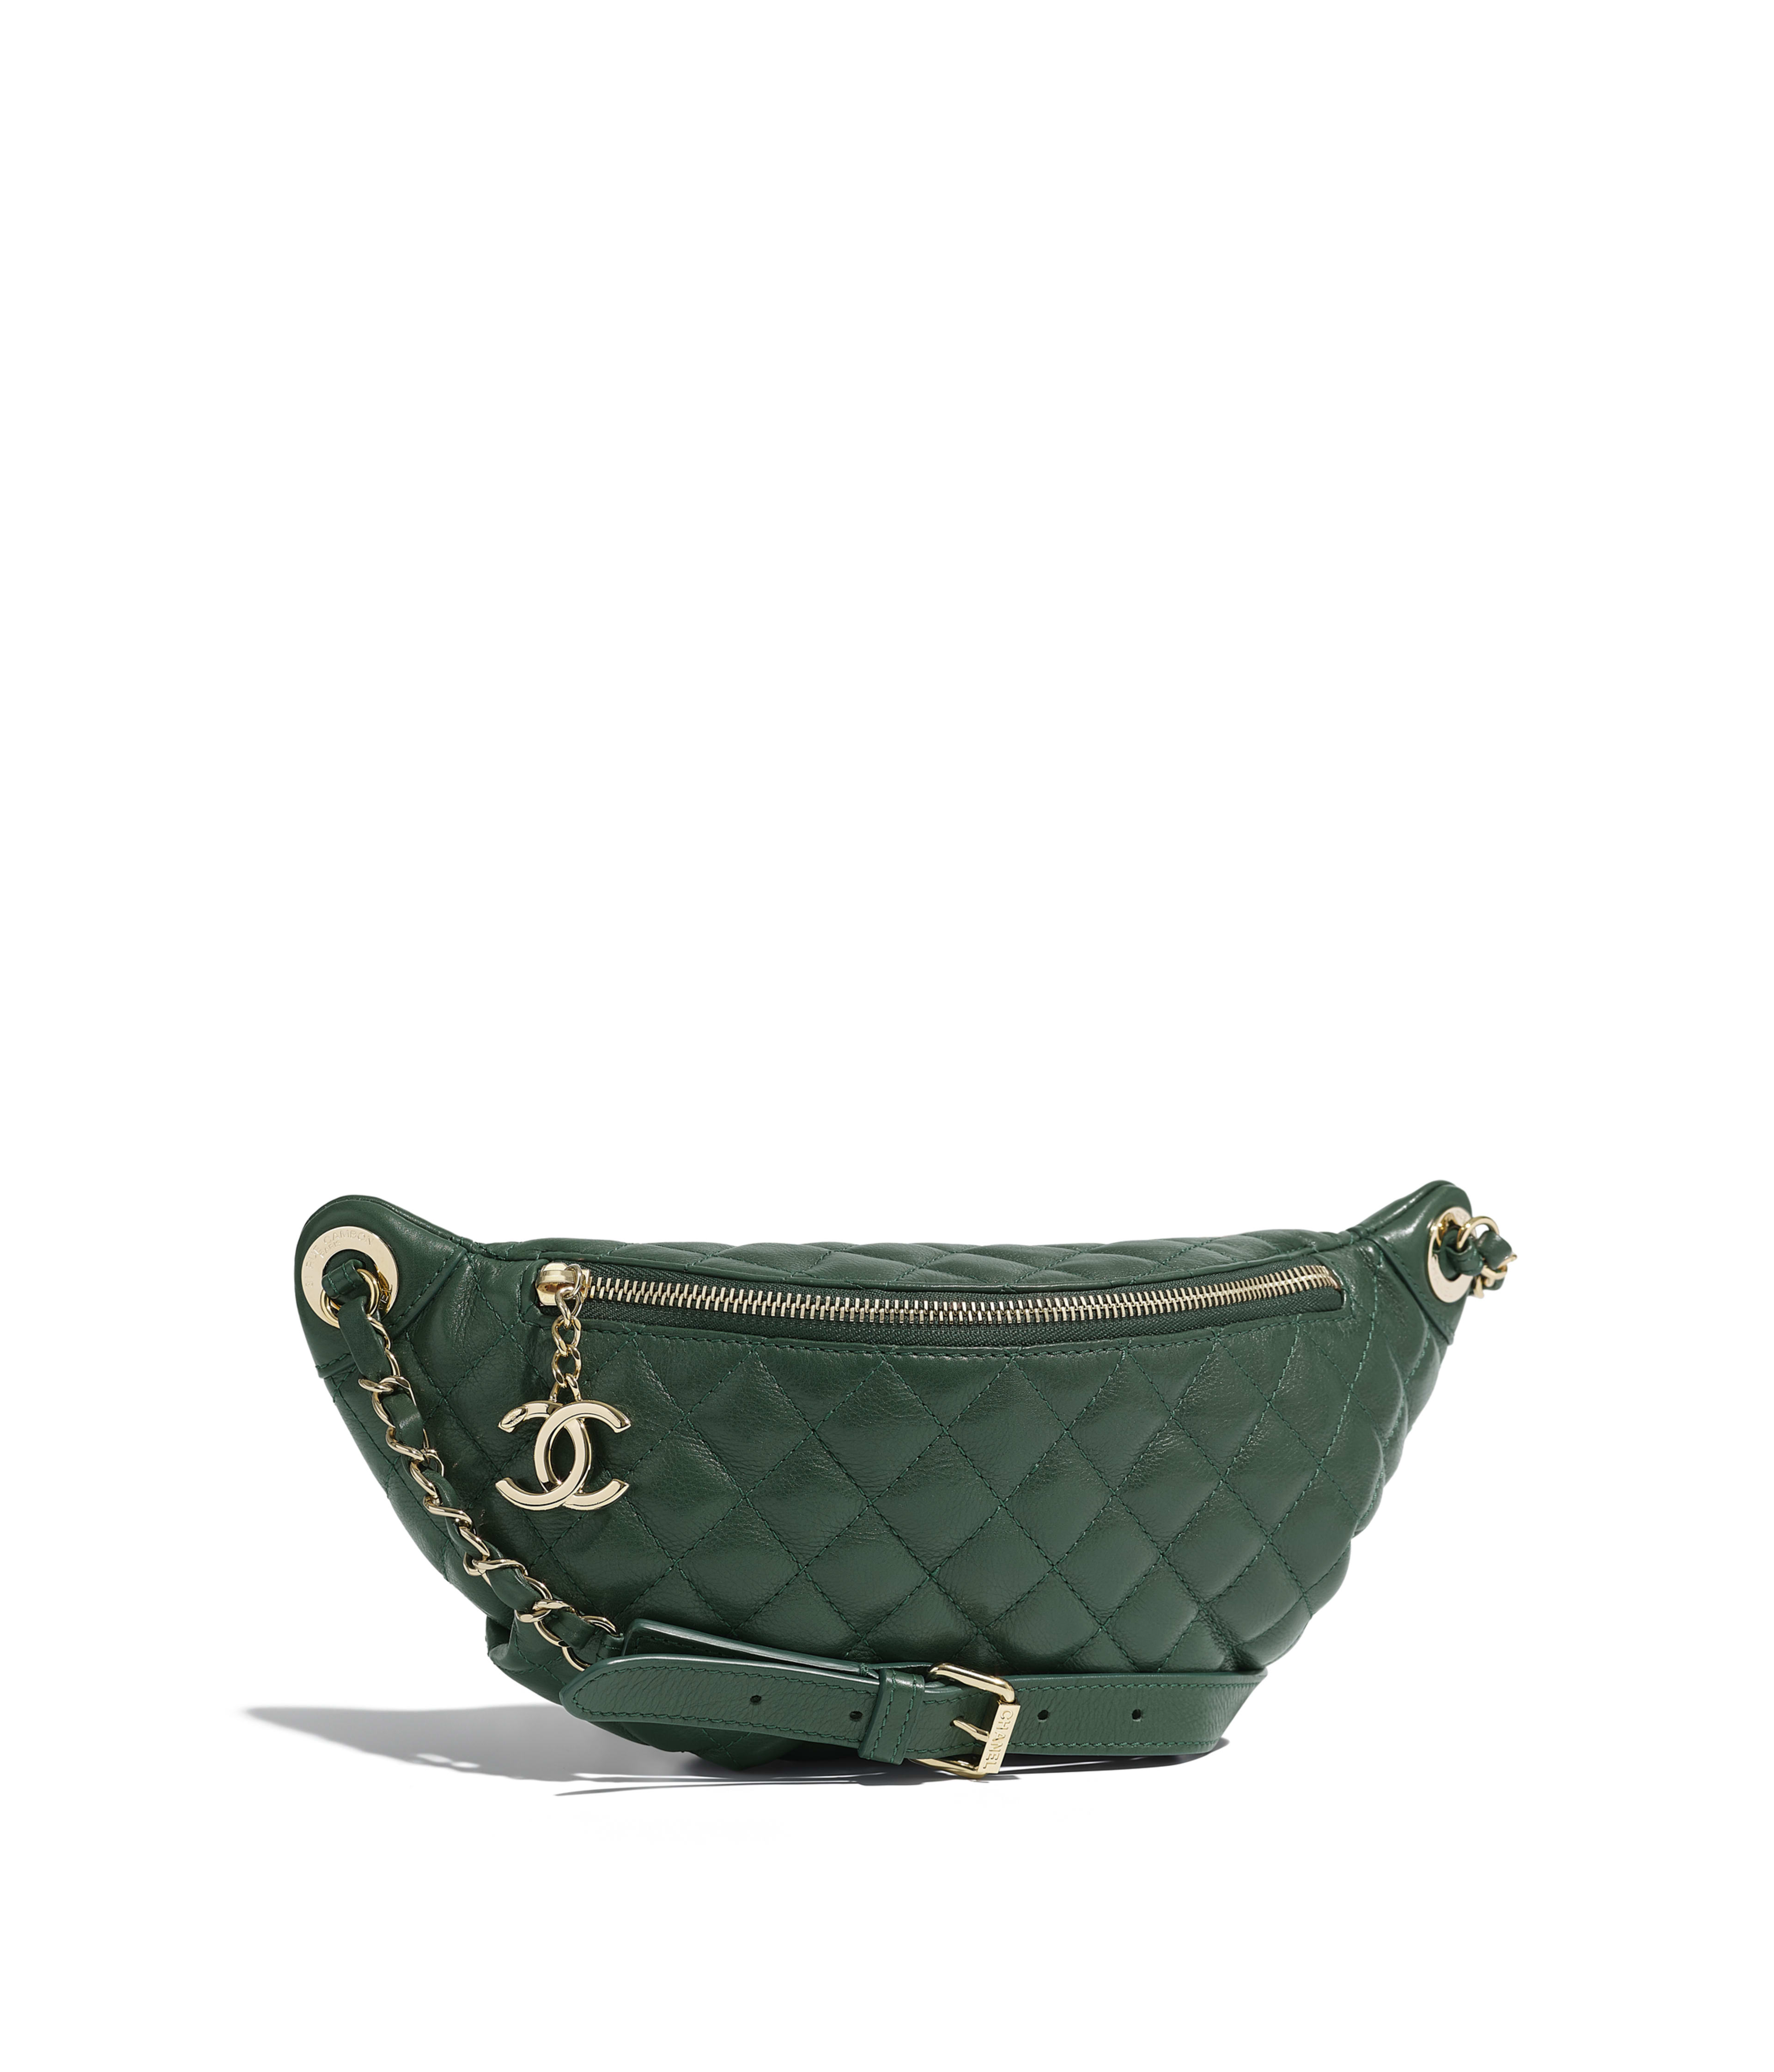 Waist Bag Calfskin Gold Tone Metal Green Ref A57929y839575b536